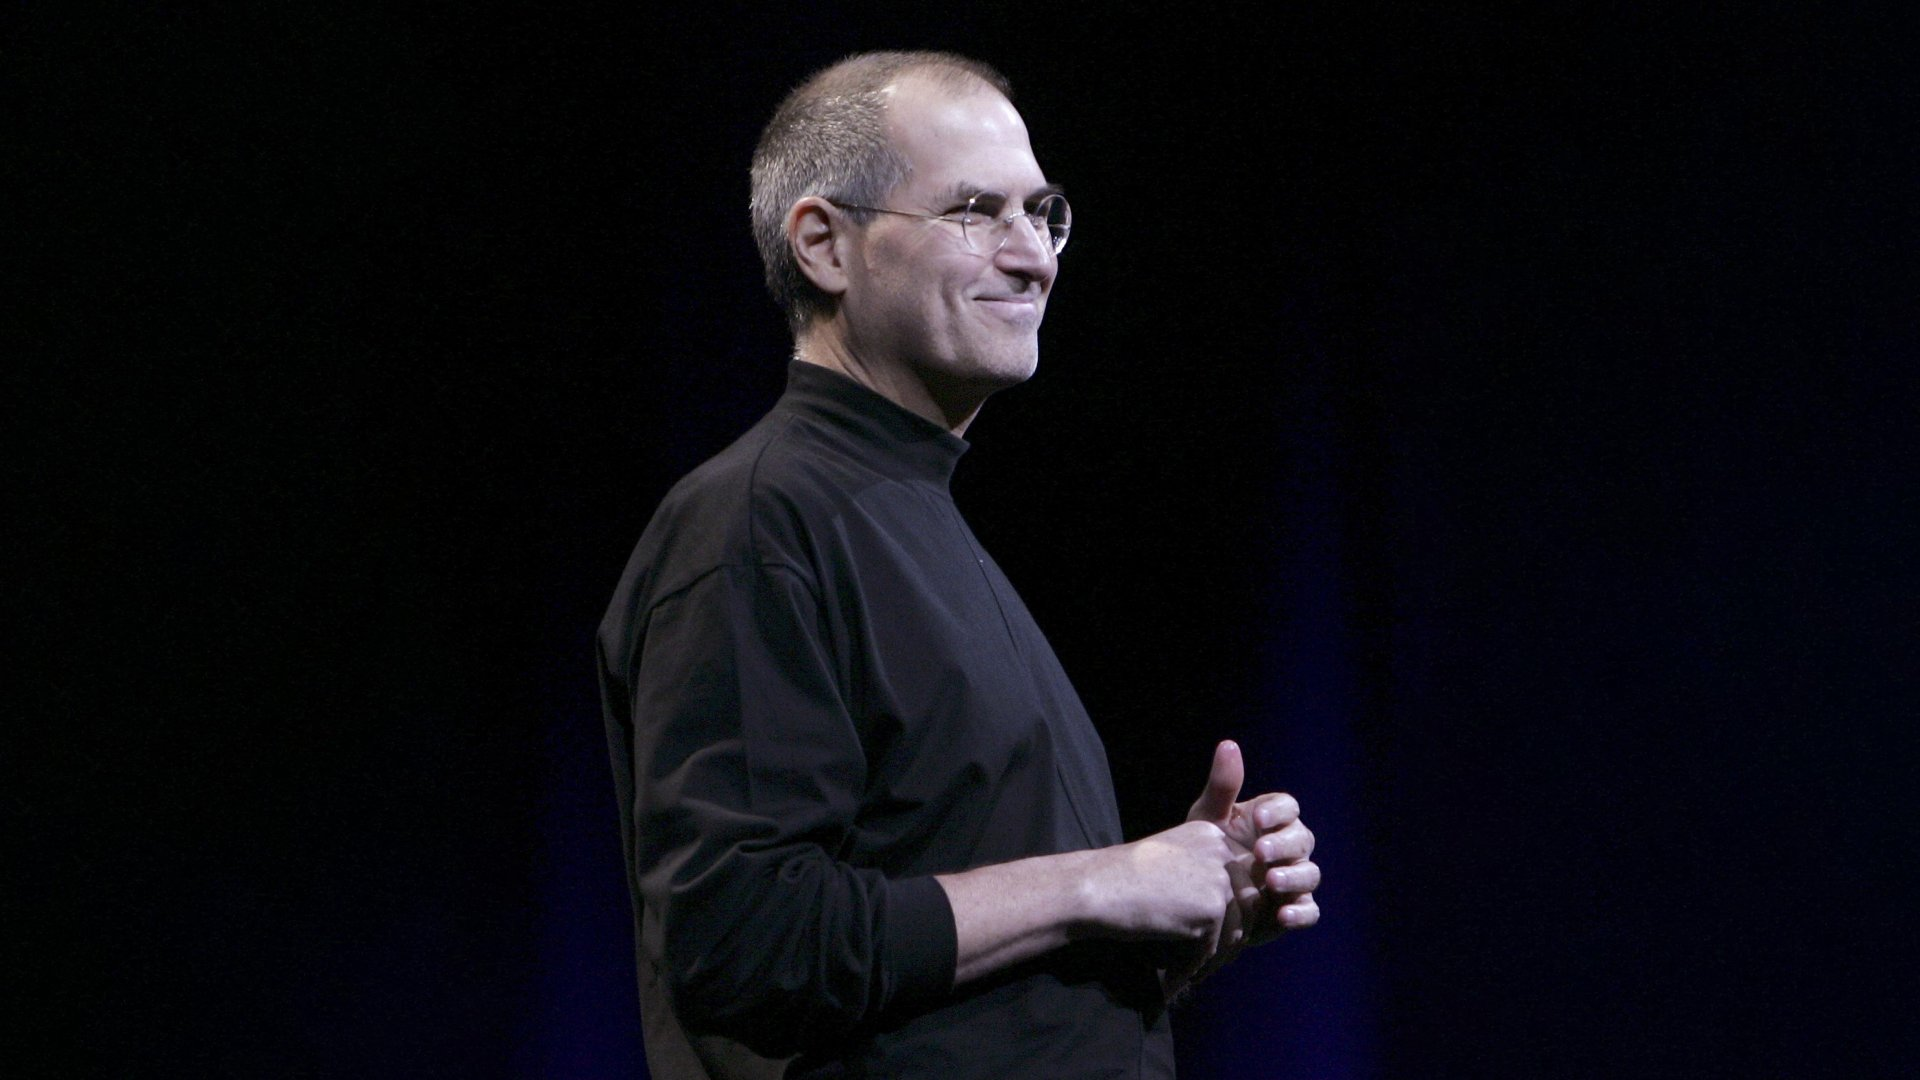 Steve Jobs Wanted What Every Remarkably Successful Person Wants